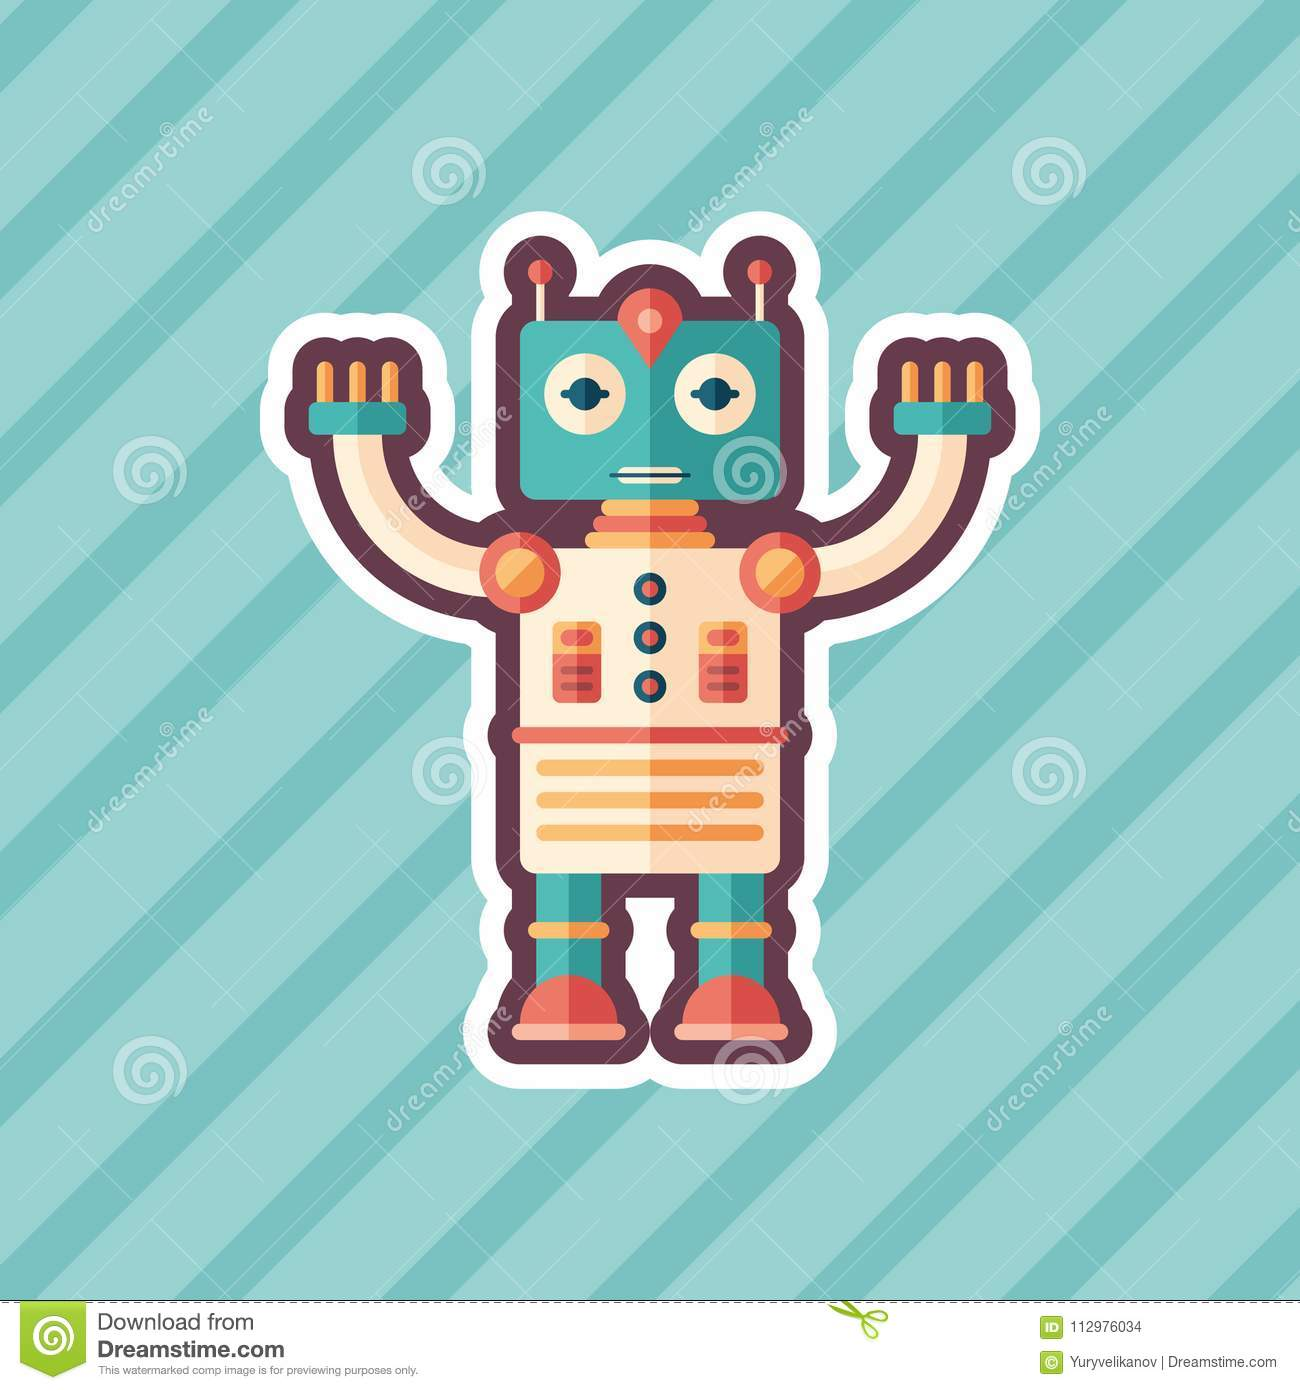 Space captain robot sticker flat icon with color background.